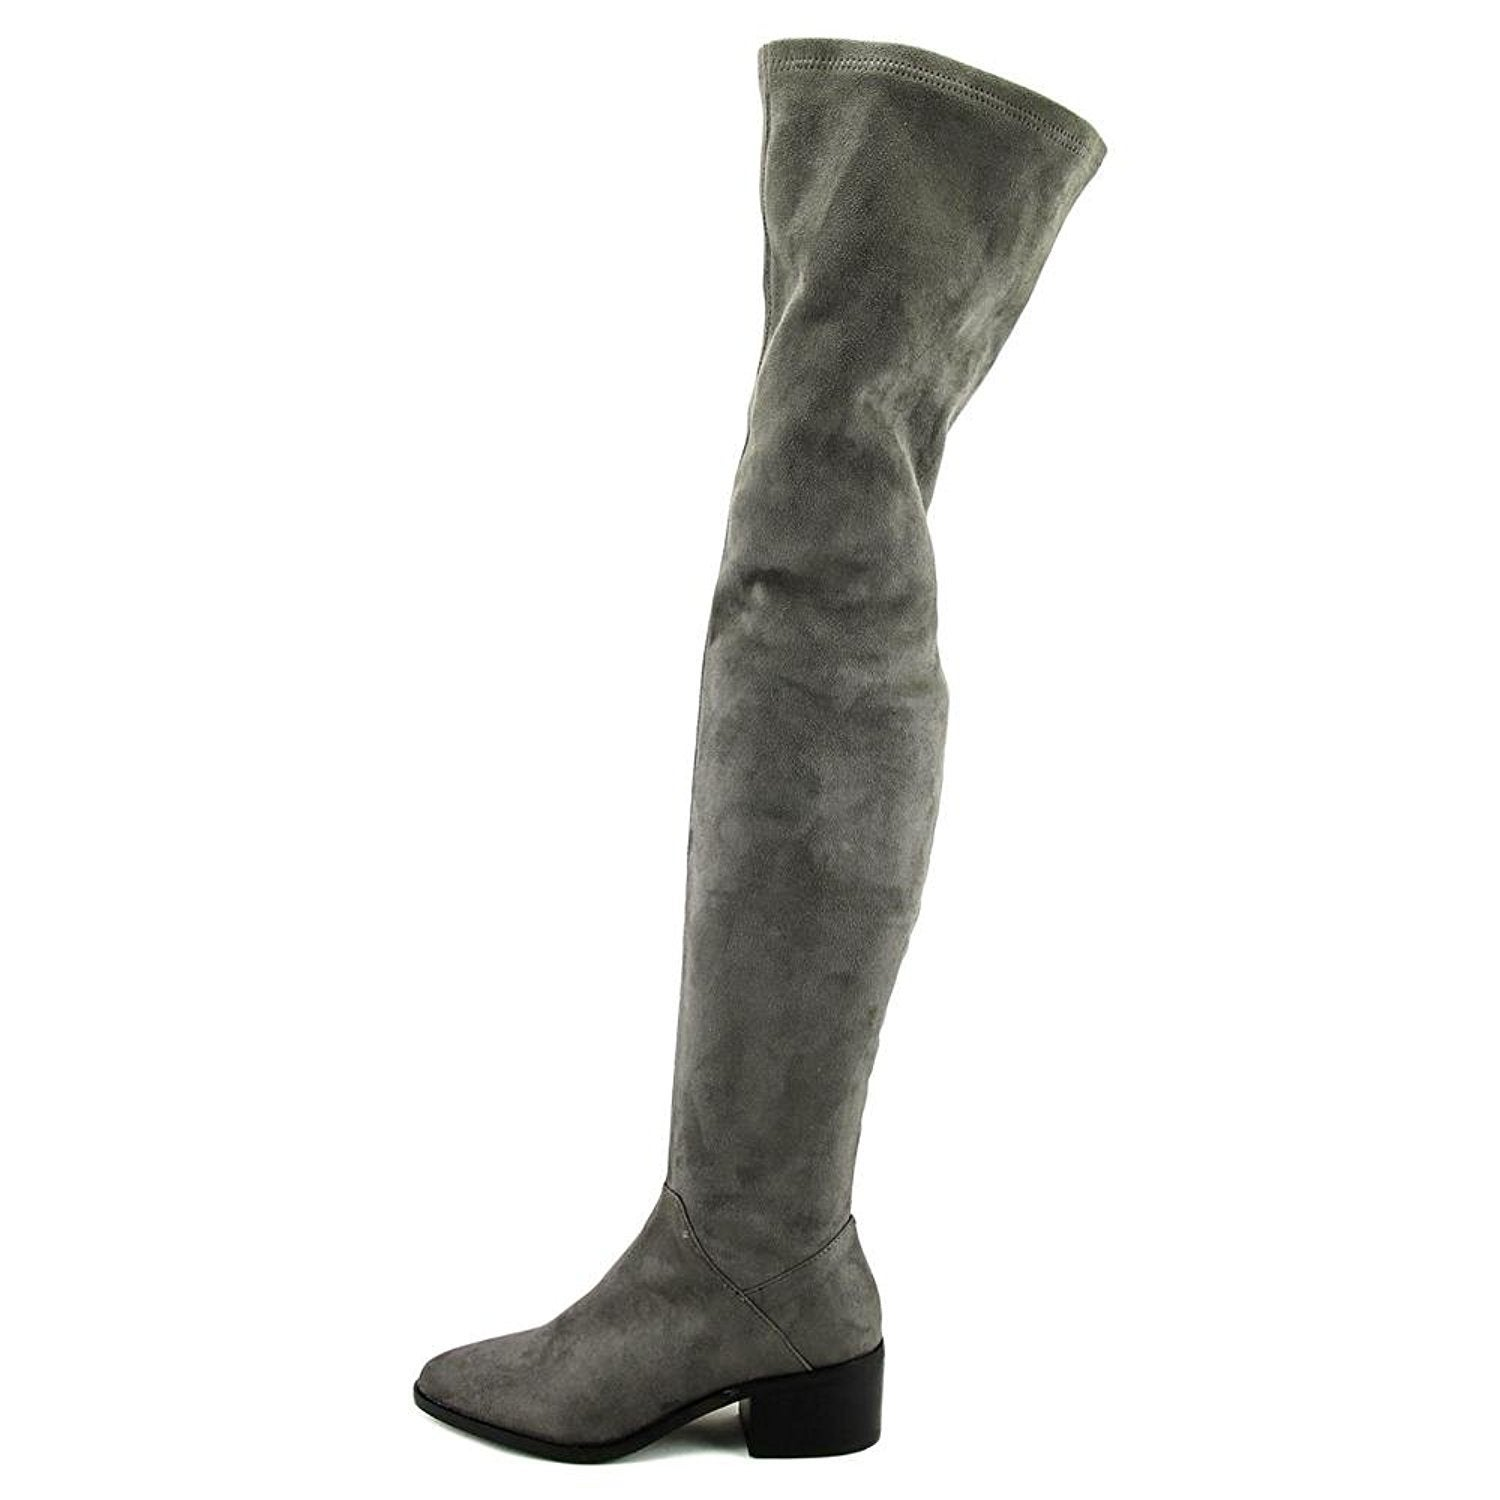 48294410358 Steve Madden Womens Gabriana Suede Almond Toe Over Knee Fashion Boots